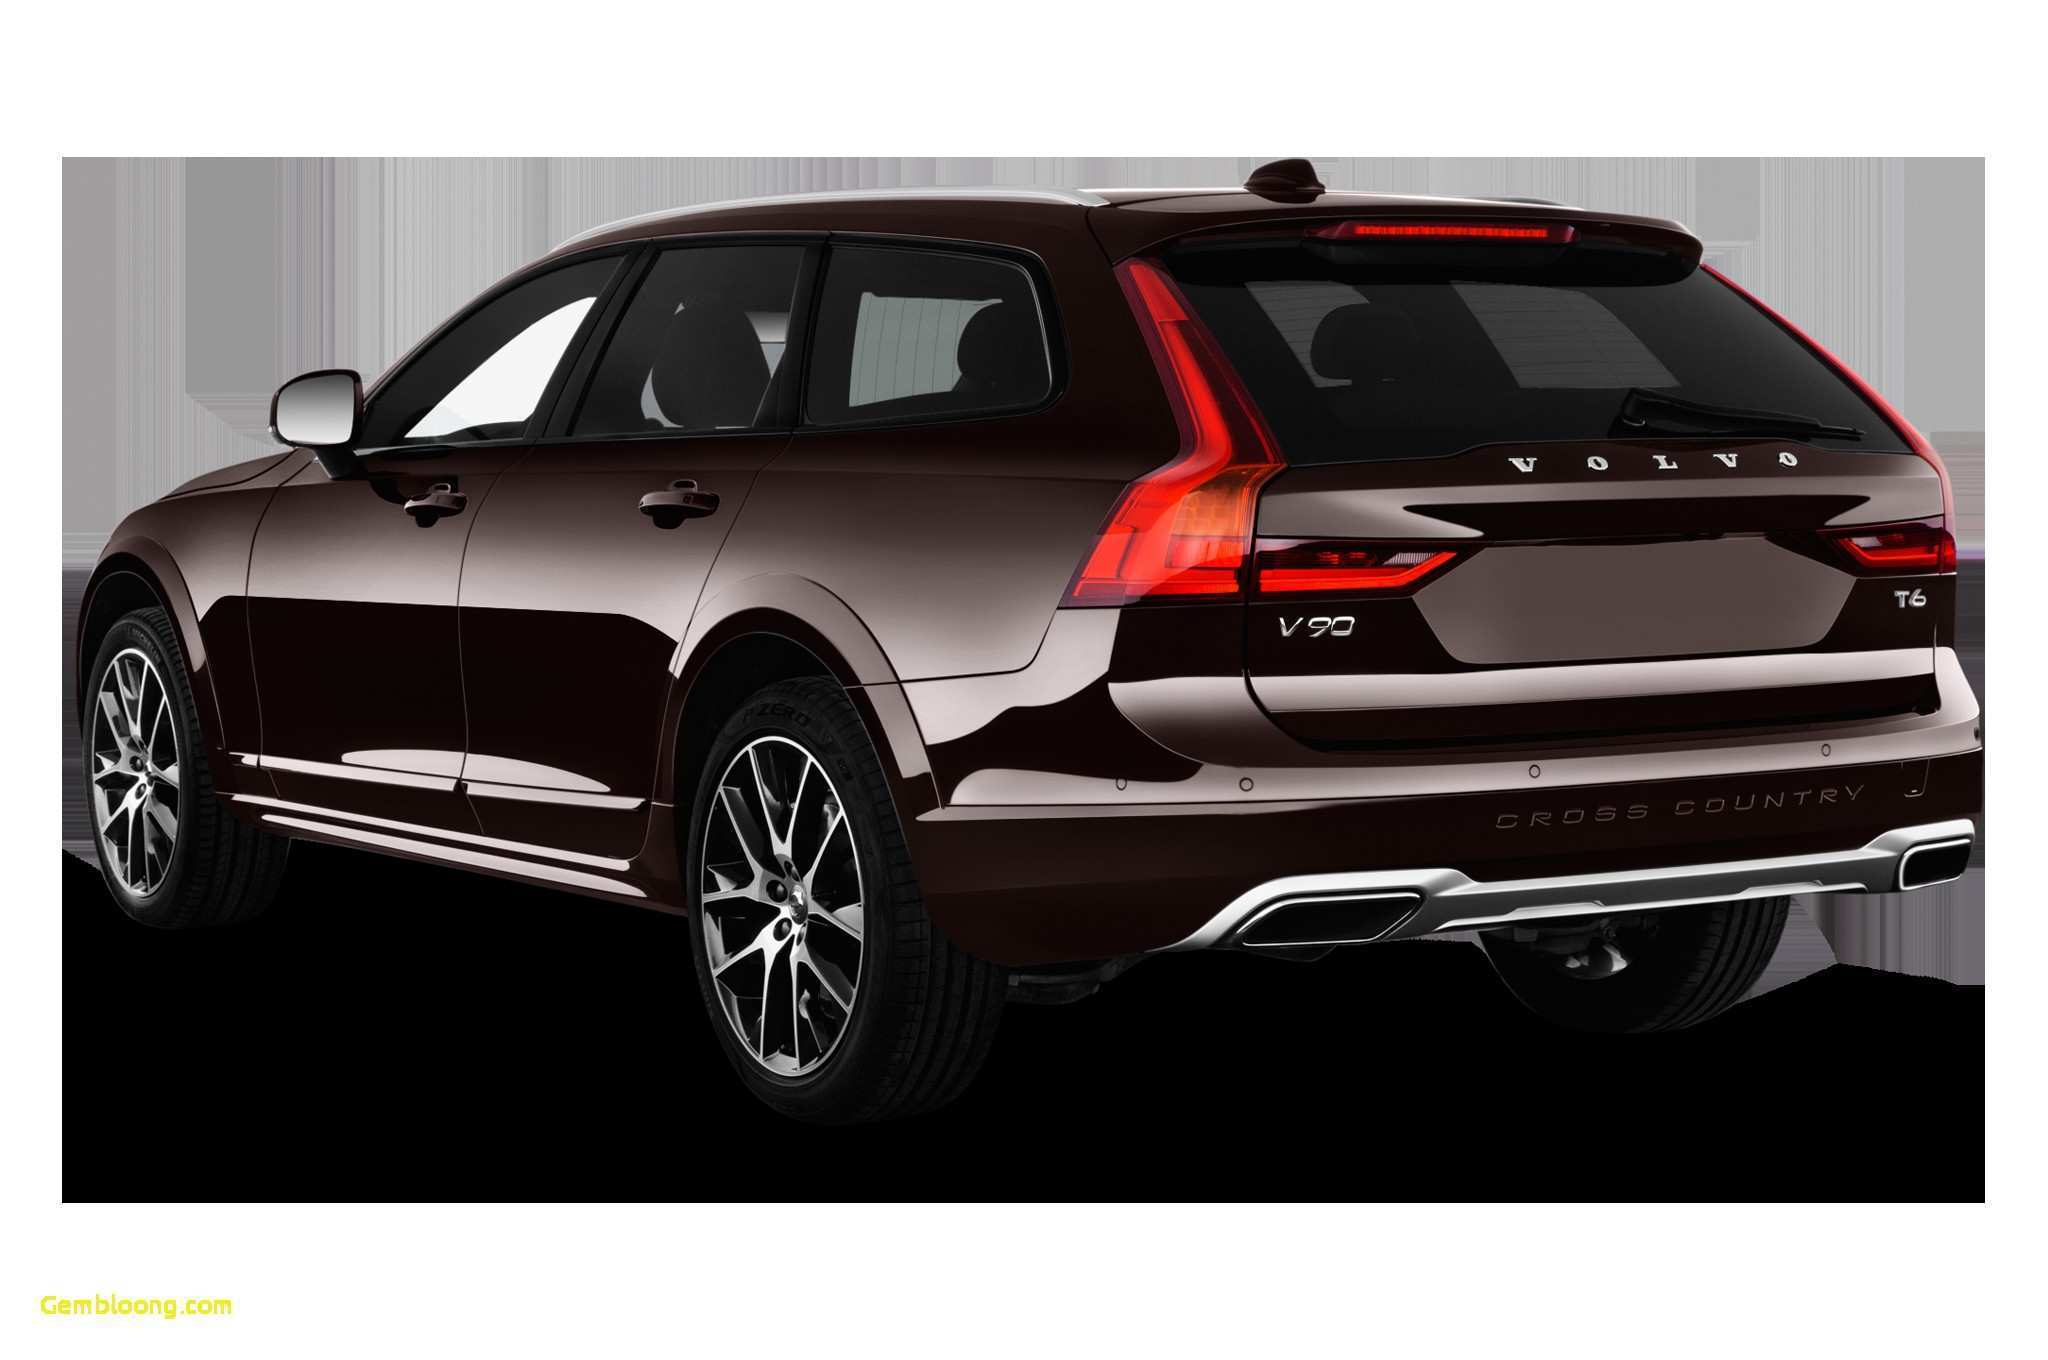 78 All New 2020 Volvo Xc70 New Generation Wagon Redesign And Concept